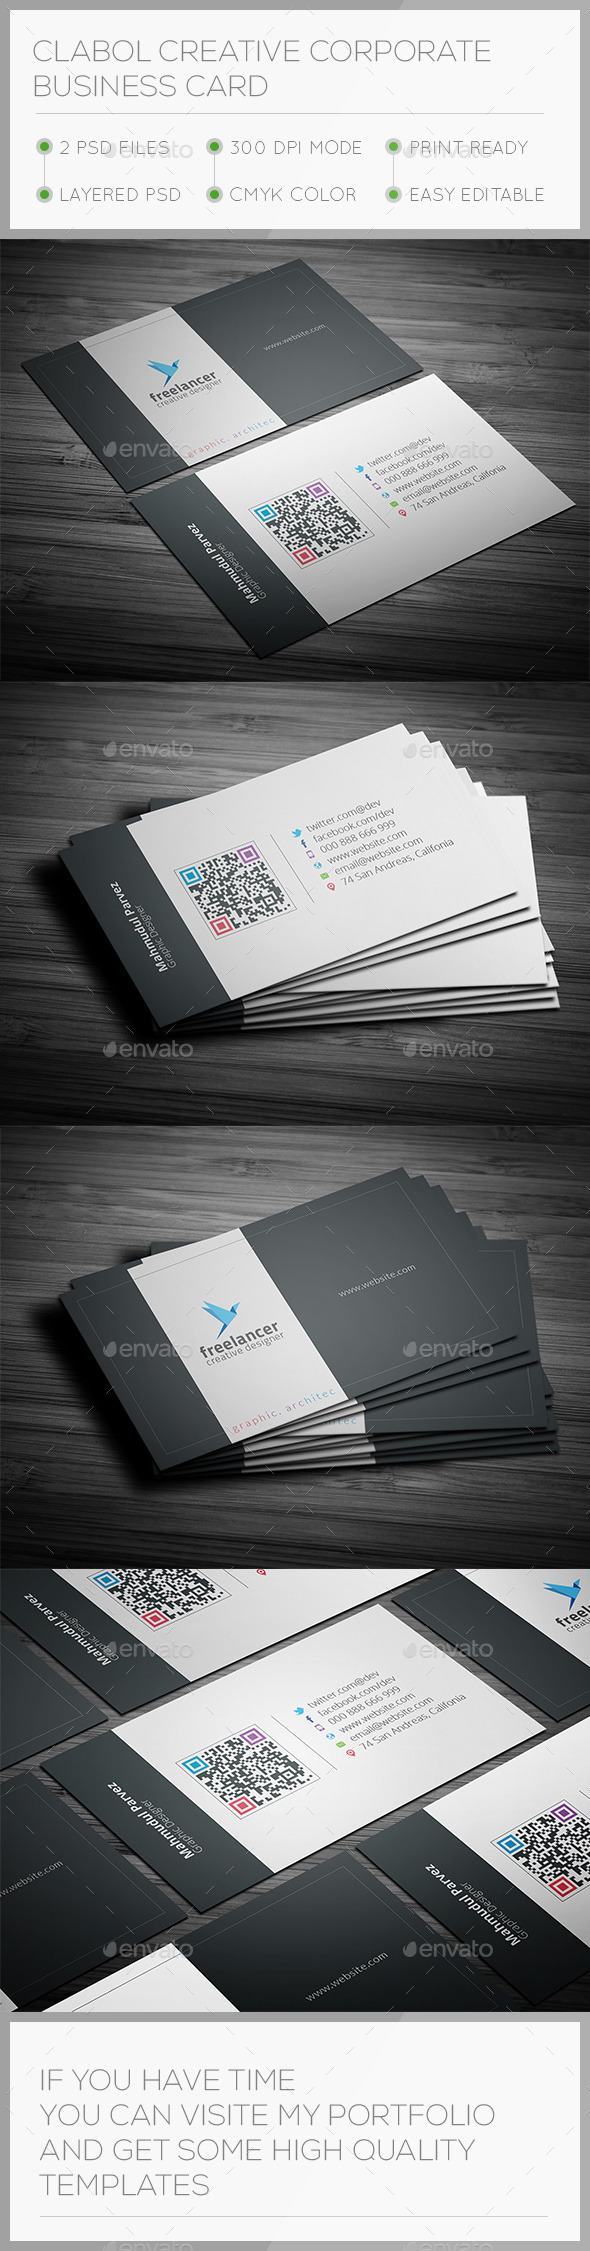 Clabol Corporate Business Card - Corporate Business Cards